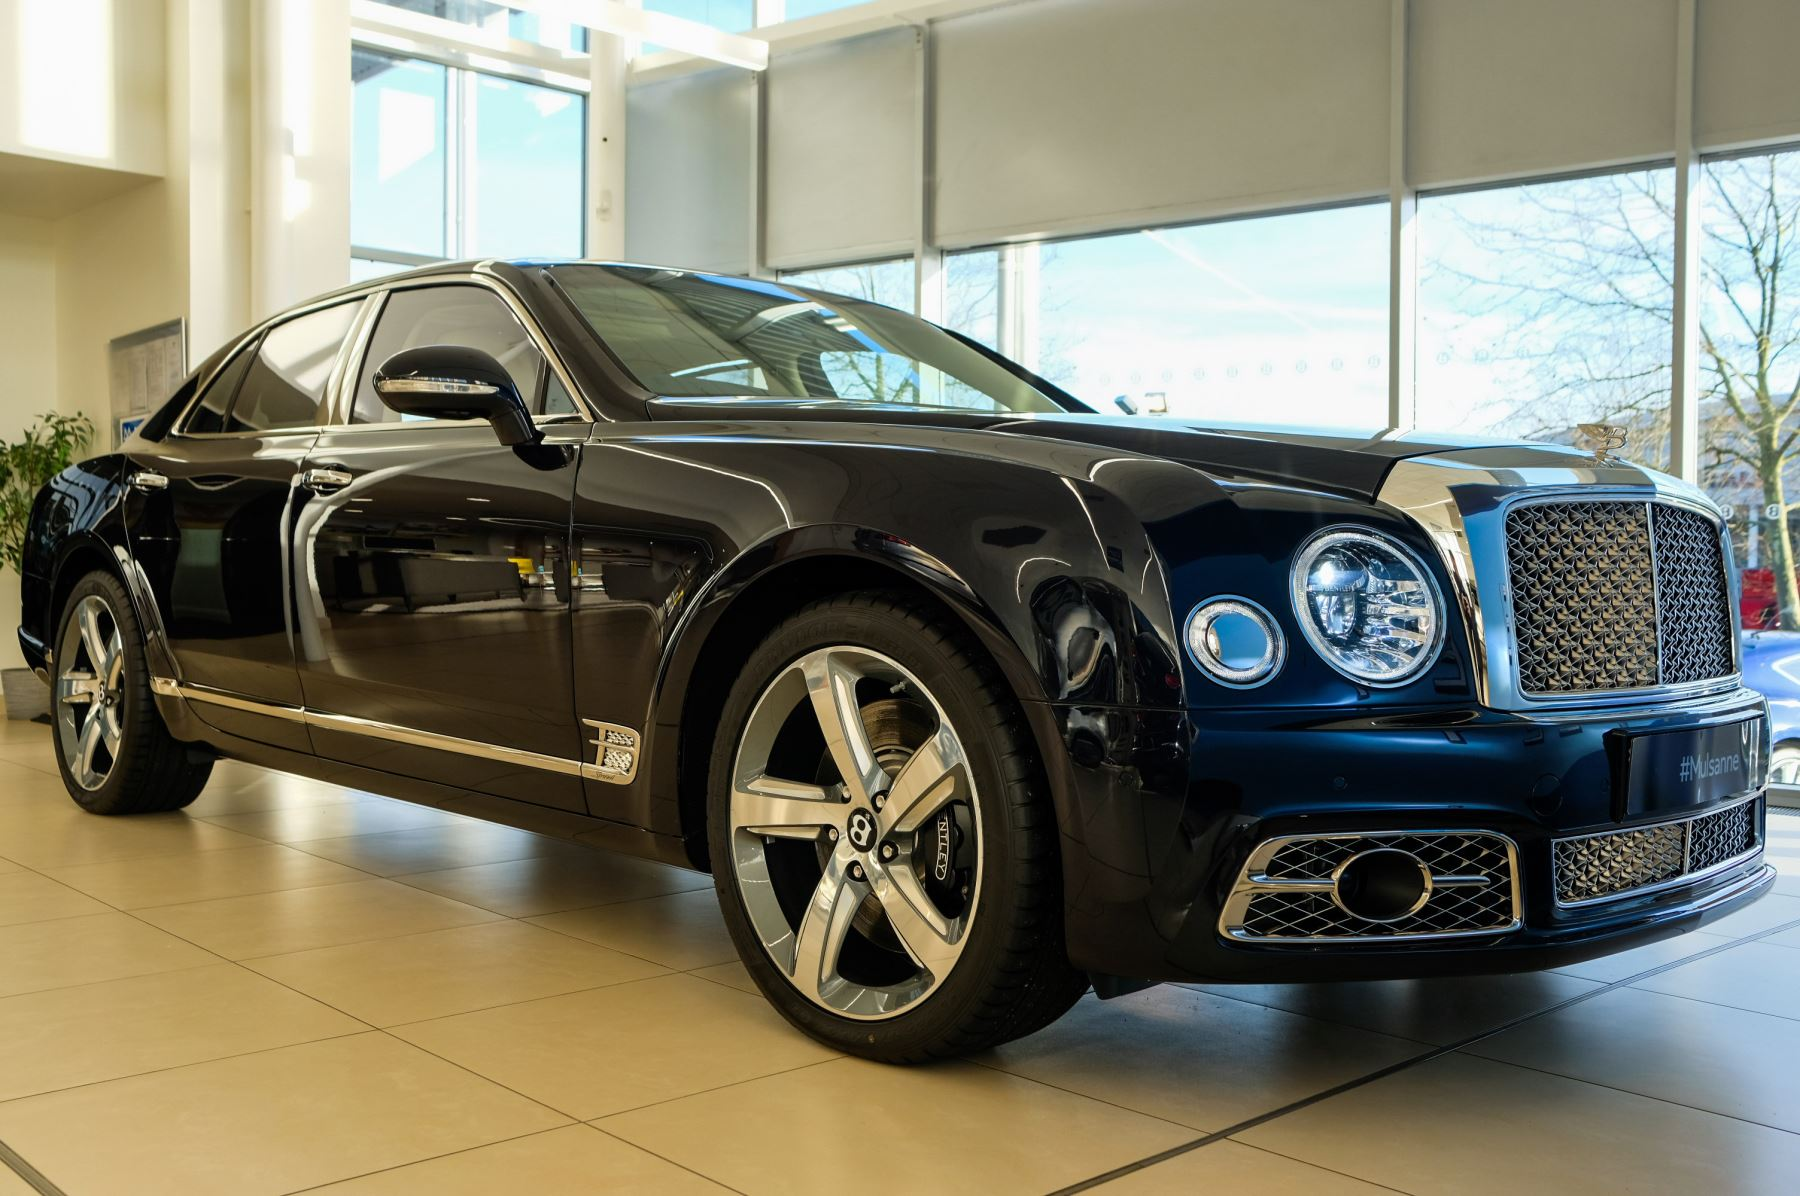 Bentley Mulsanne Speed 6.8 V8 Speed - Speed Premier, Entertainment and Comfort Specification Automatic 4 door Saloon (2020)